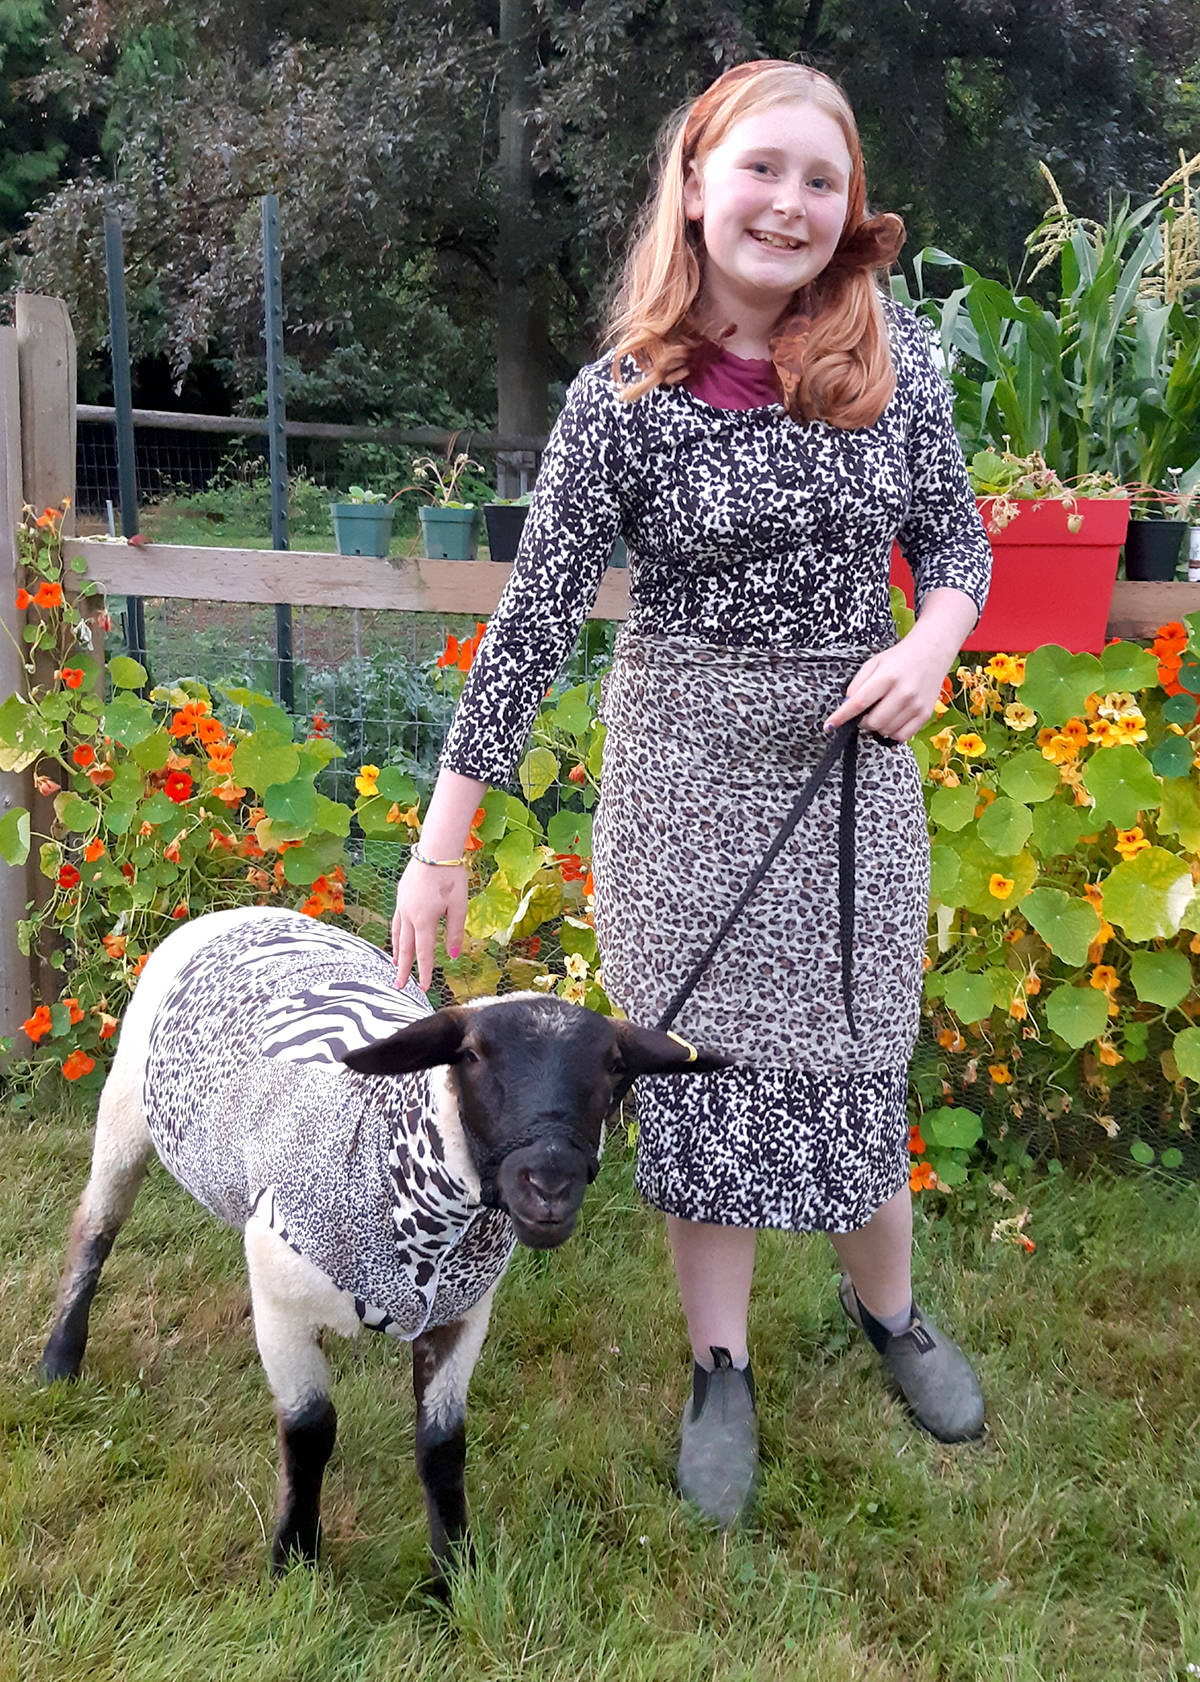 Elly von Euw shows off her sheep, who coordinated outfits for a 4-H costume class. (Glenda Von Euw/Special to the Aldergrove Star)